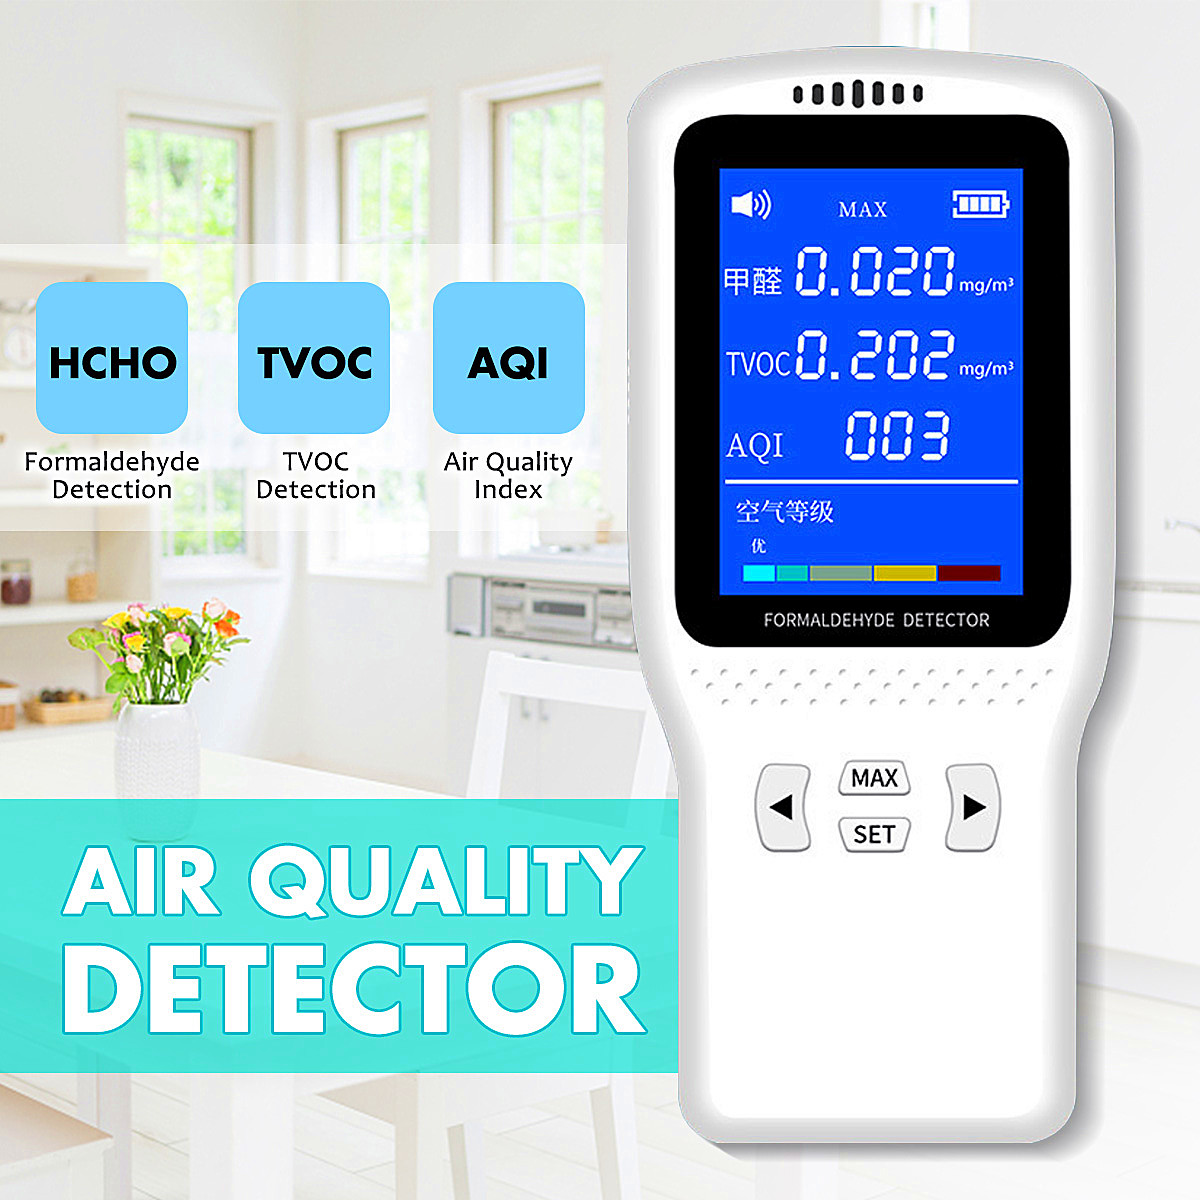 PM2.5 Monitor,Formaldehyde Detector Indoor Home Air Quality Tester HCHO Meter PM2.5 Monitor,Formaldehyde Tester